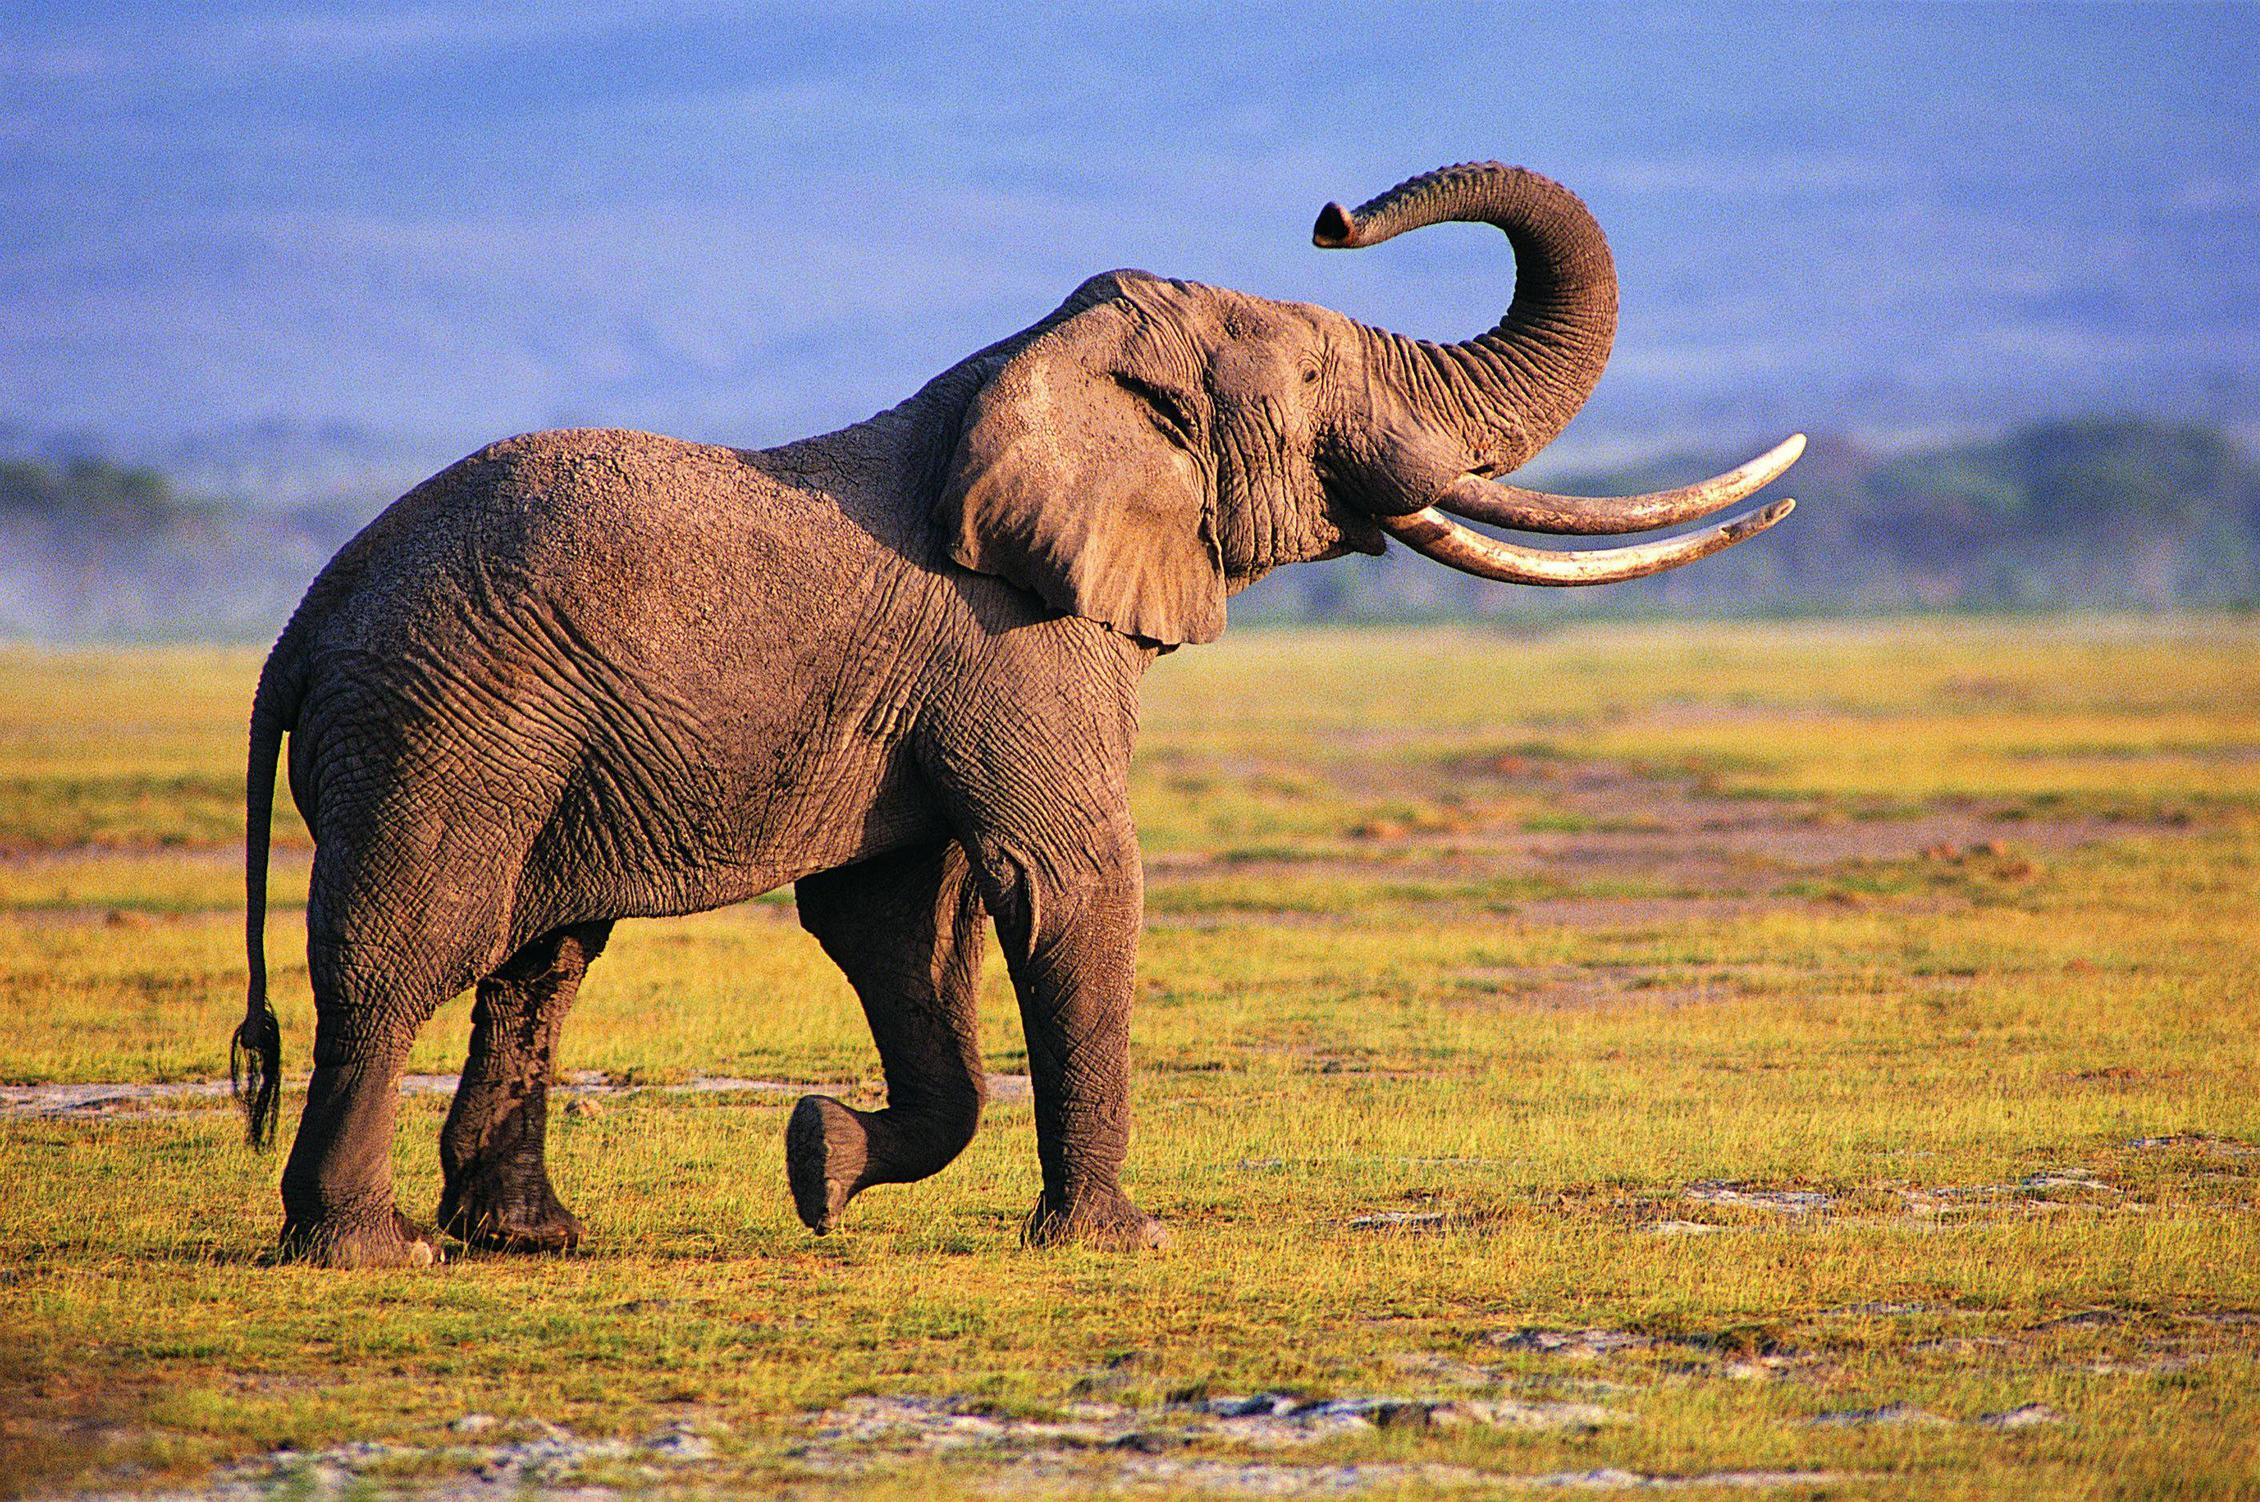 African Elephant Wallpaper HD Download For Desktop  PC 2260x1502